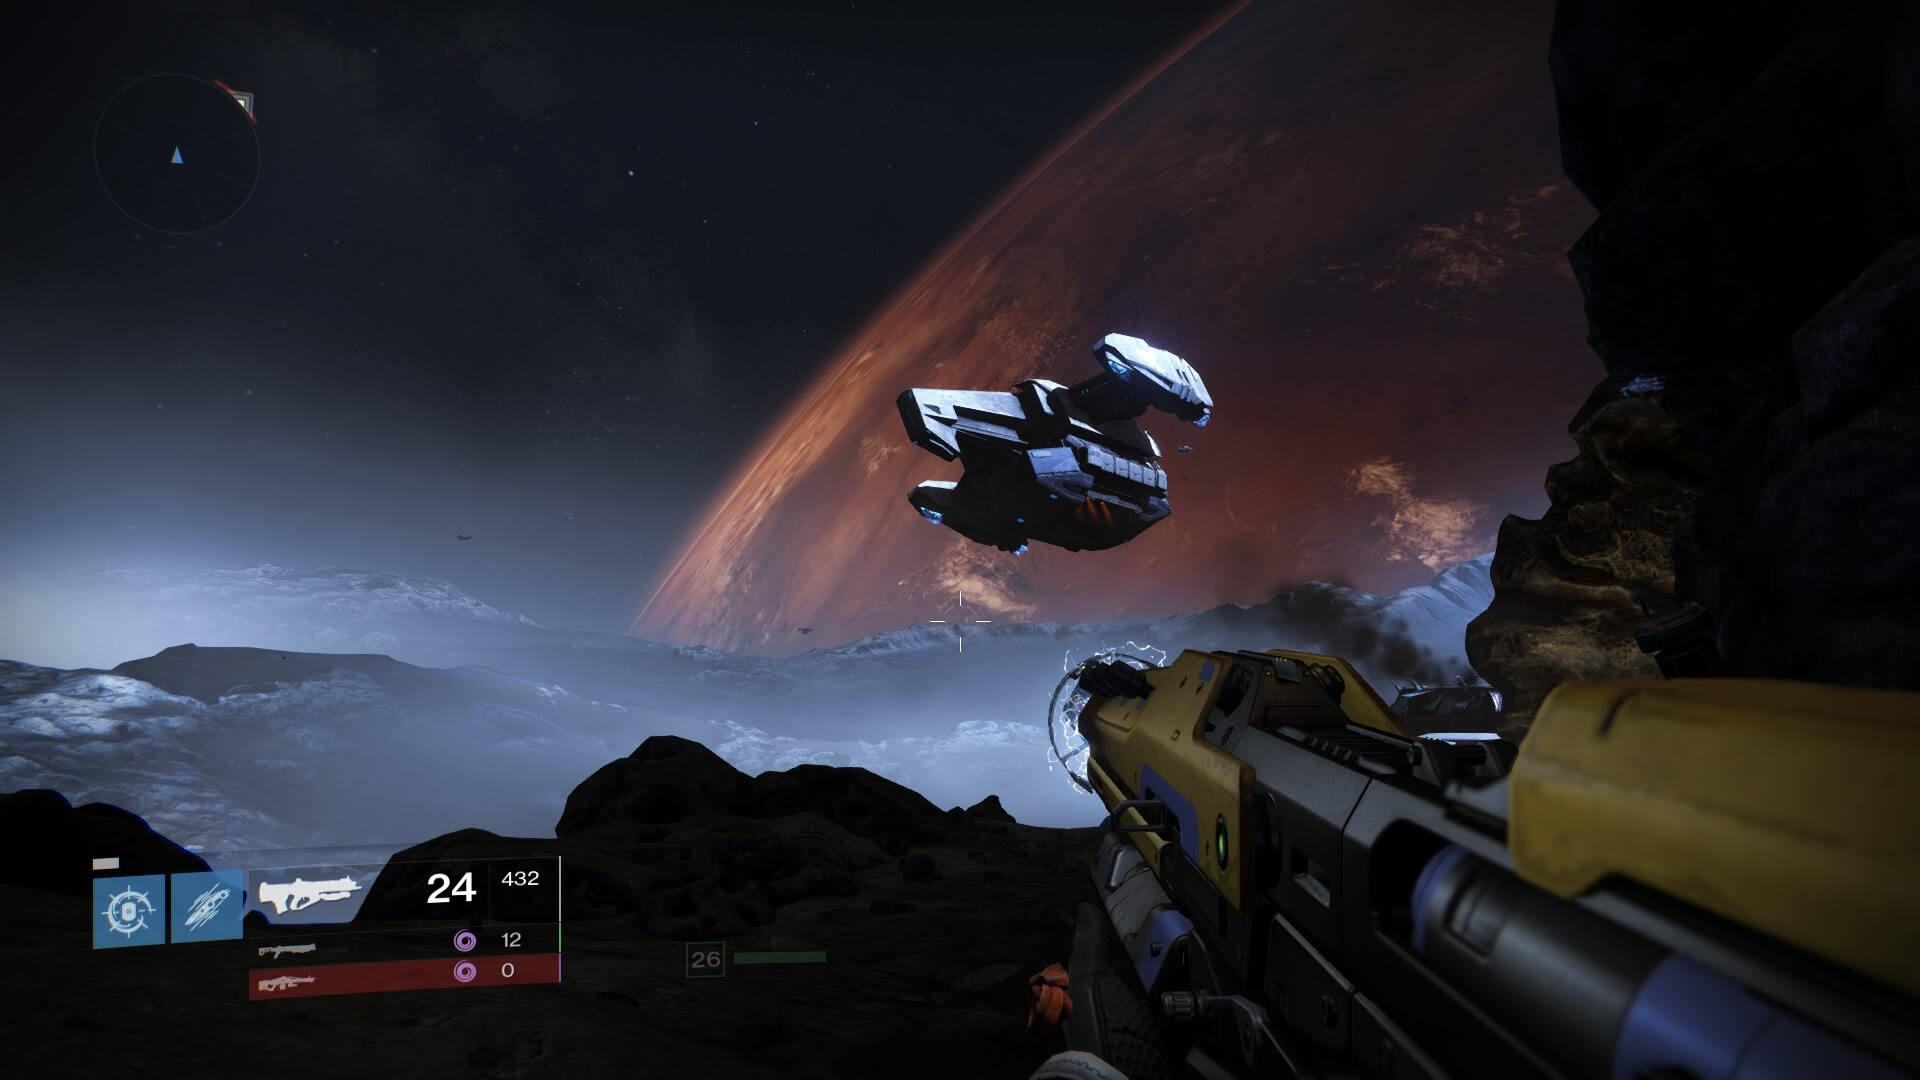 Destiny: The Taken King PS4 Review: What a Difference a Year Makes